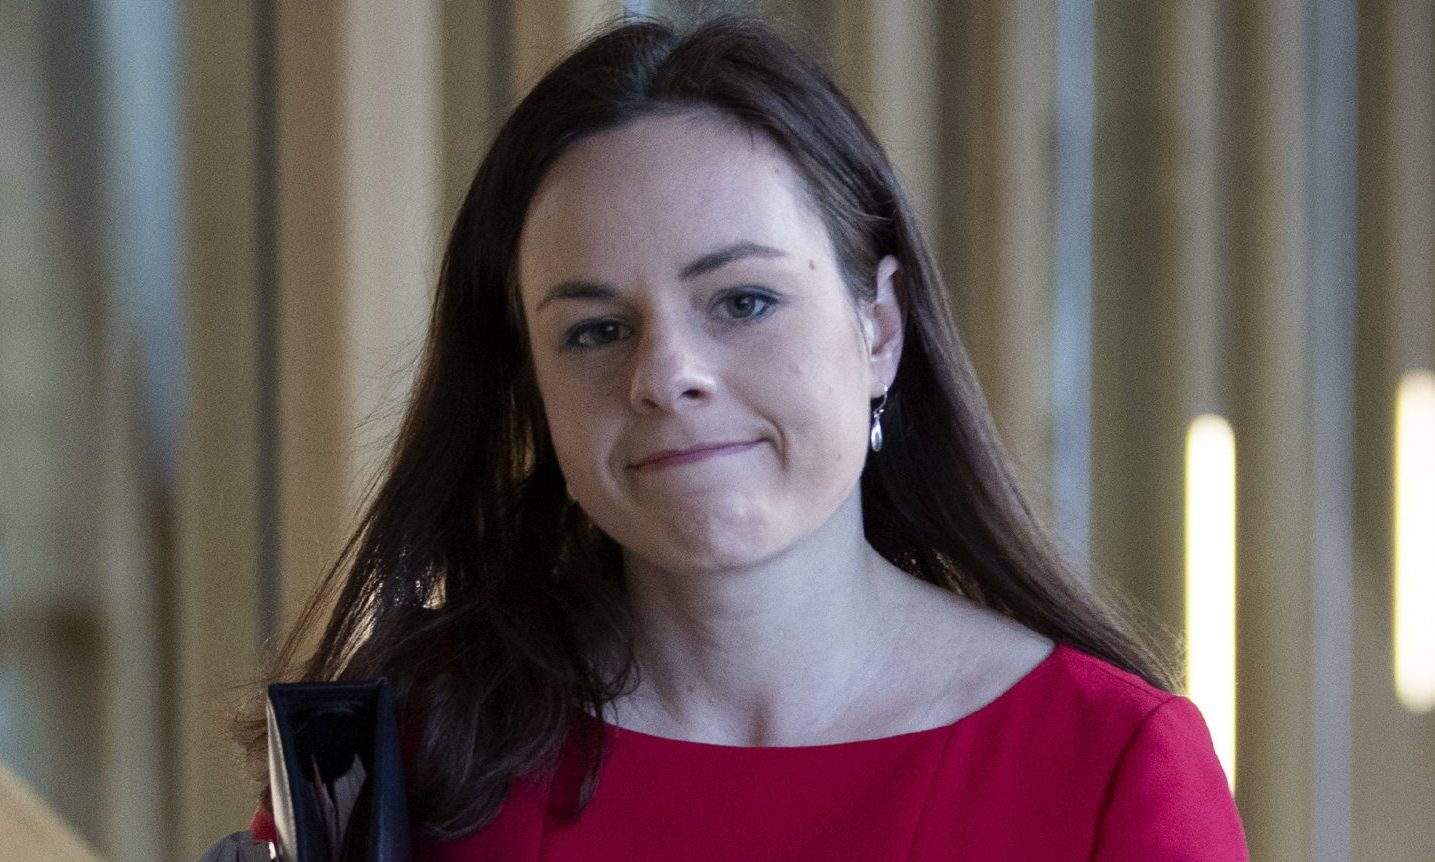 Public finance minister Kate Forbes is being urged to deliver funding to councils to help them through lockdown.